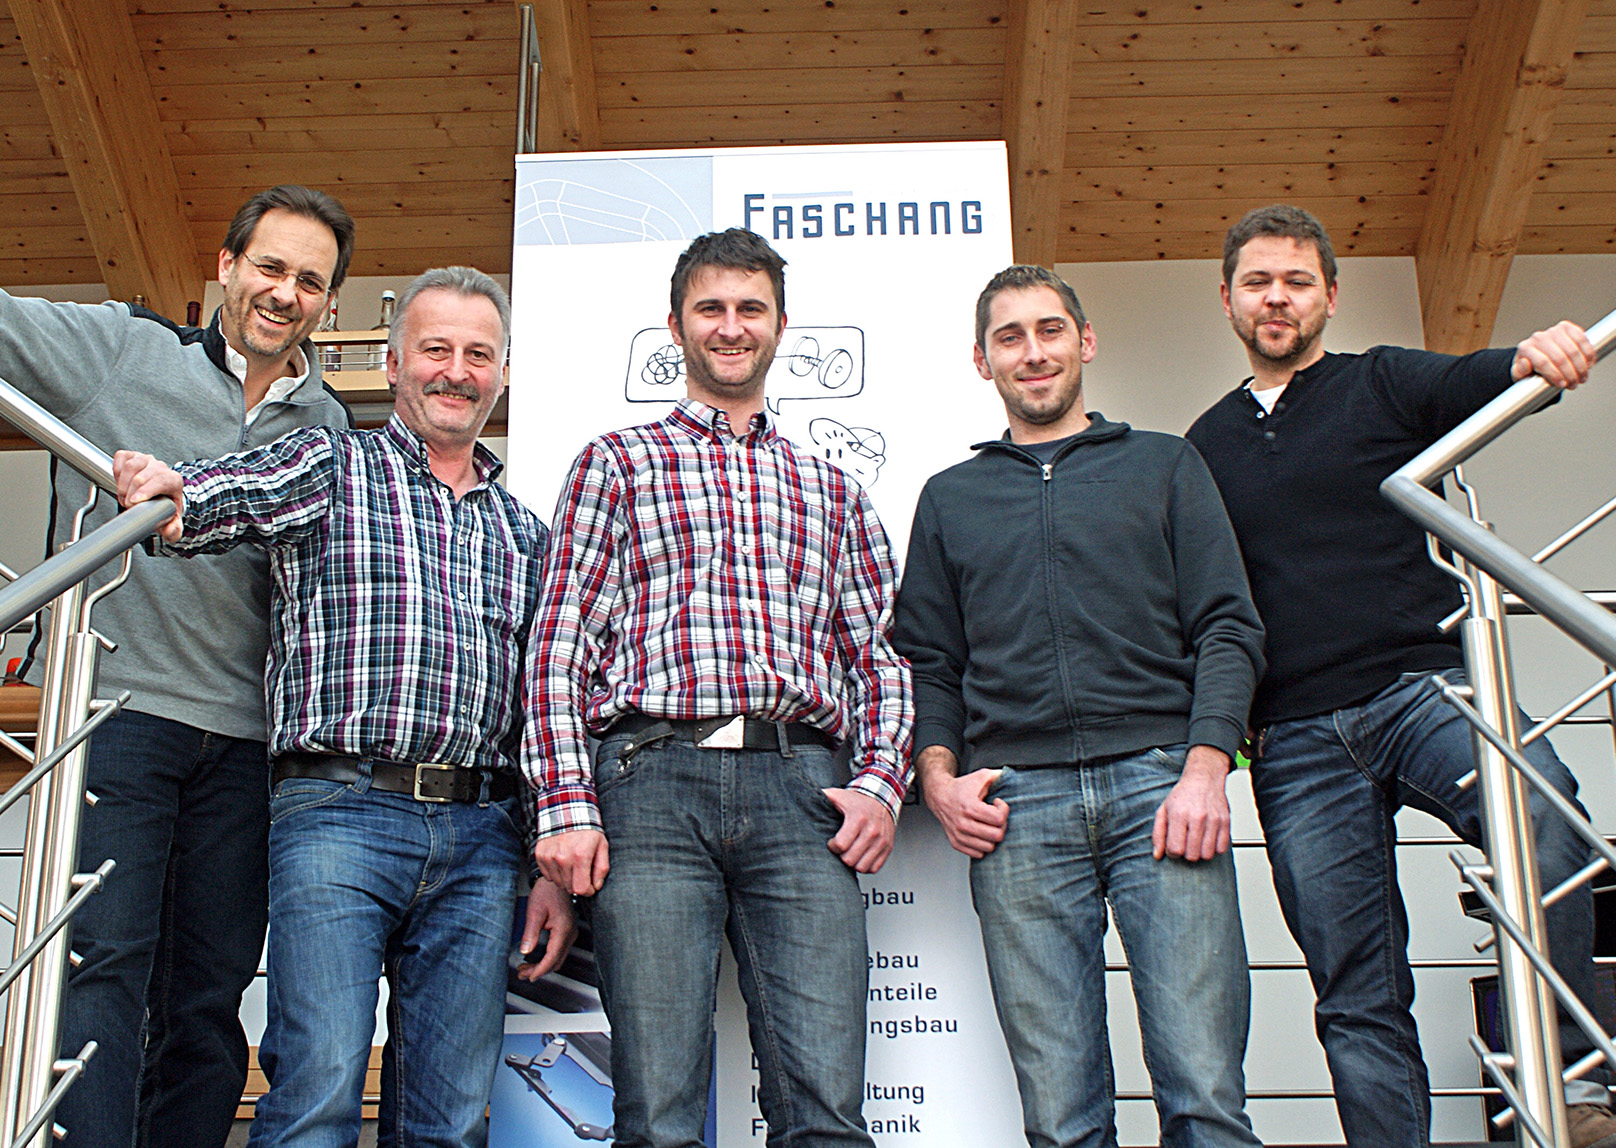 Das Mechanik-Team der FirmaFaschang.